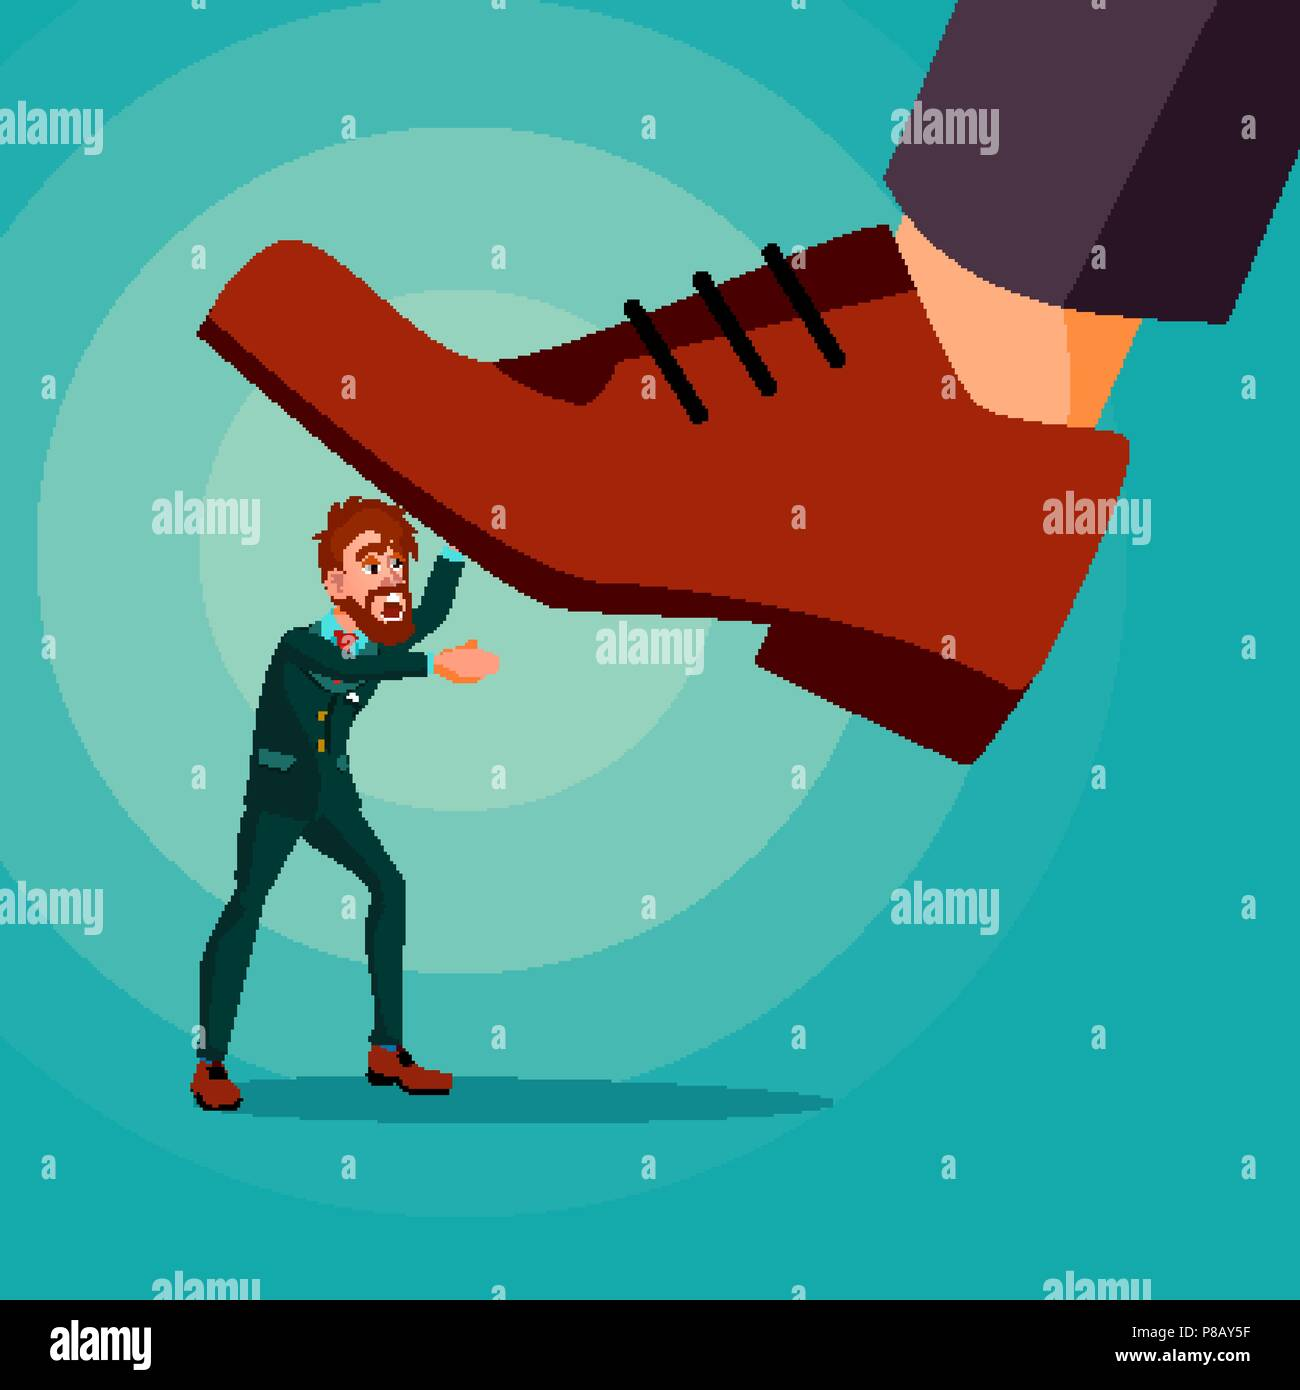 Big Foot Stepping On Businessman Vector. Shoes. Stomping Foot. Oppressed. Confrontation Strategy. Cartoon Illustration - Stock Image